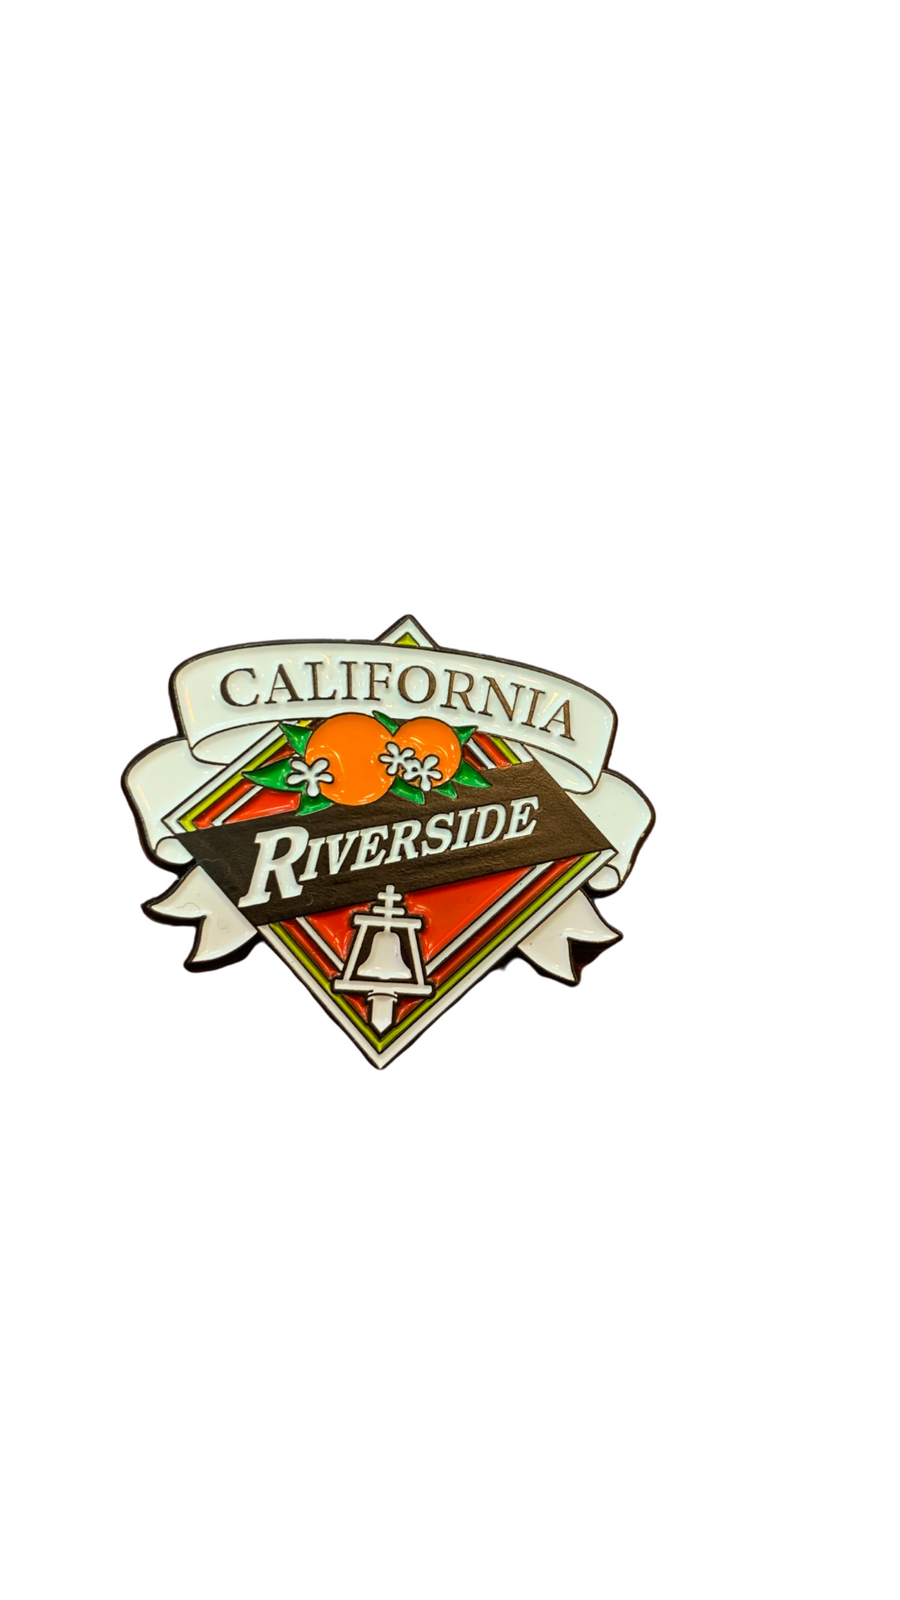 Riverside City Crest Pin